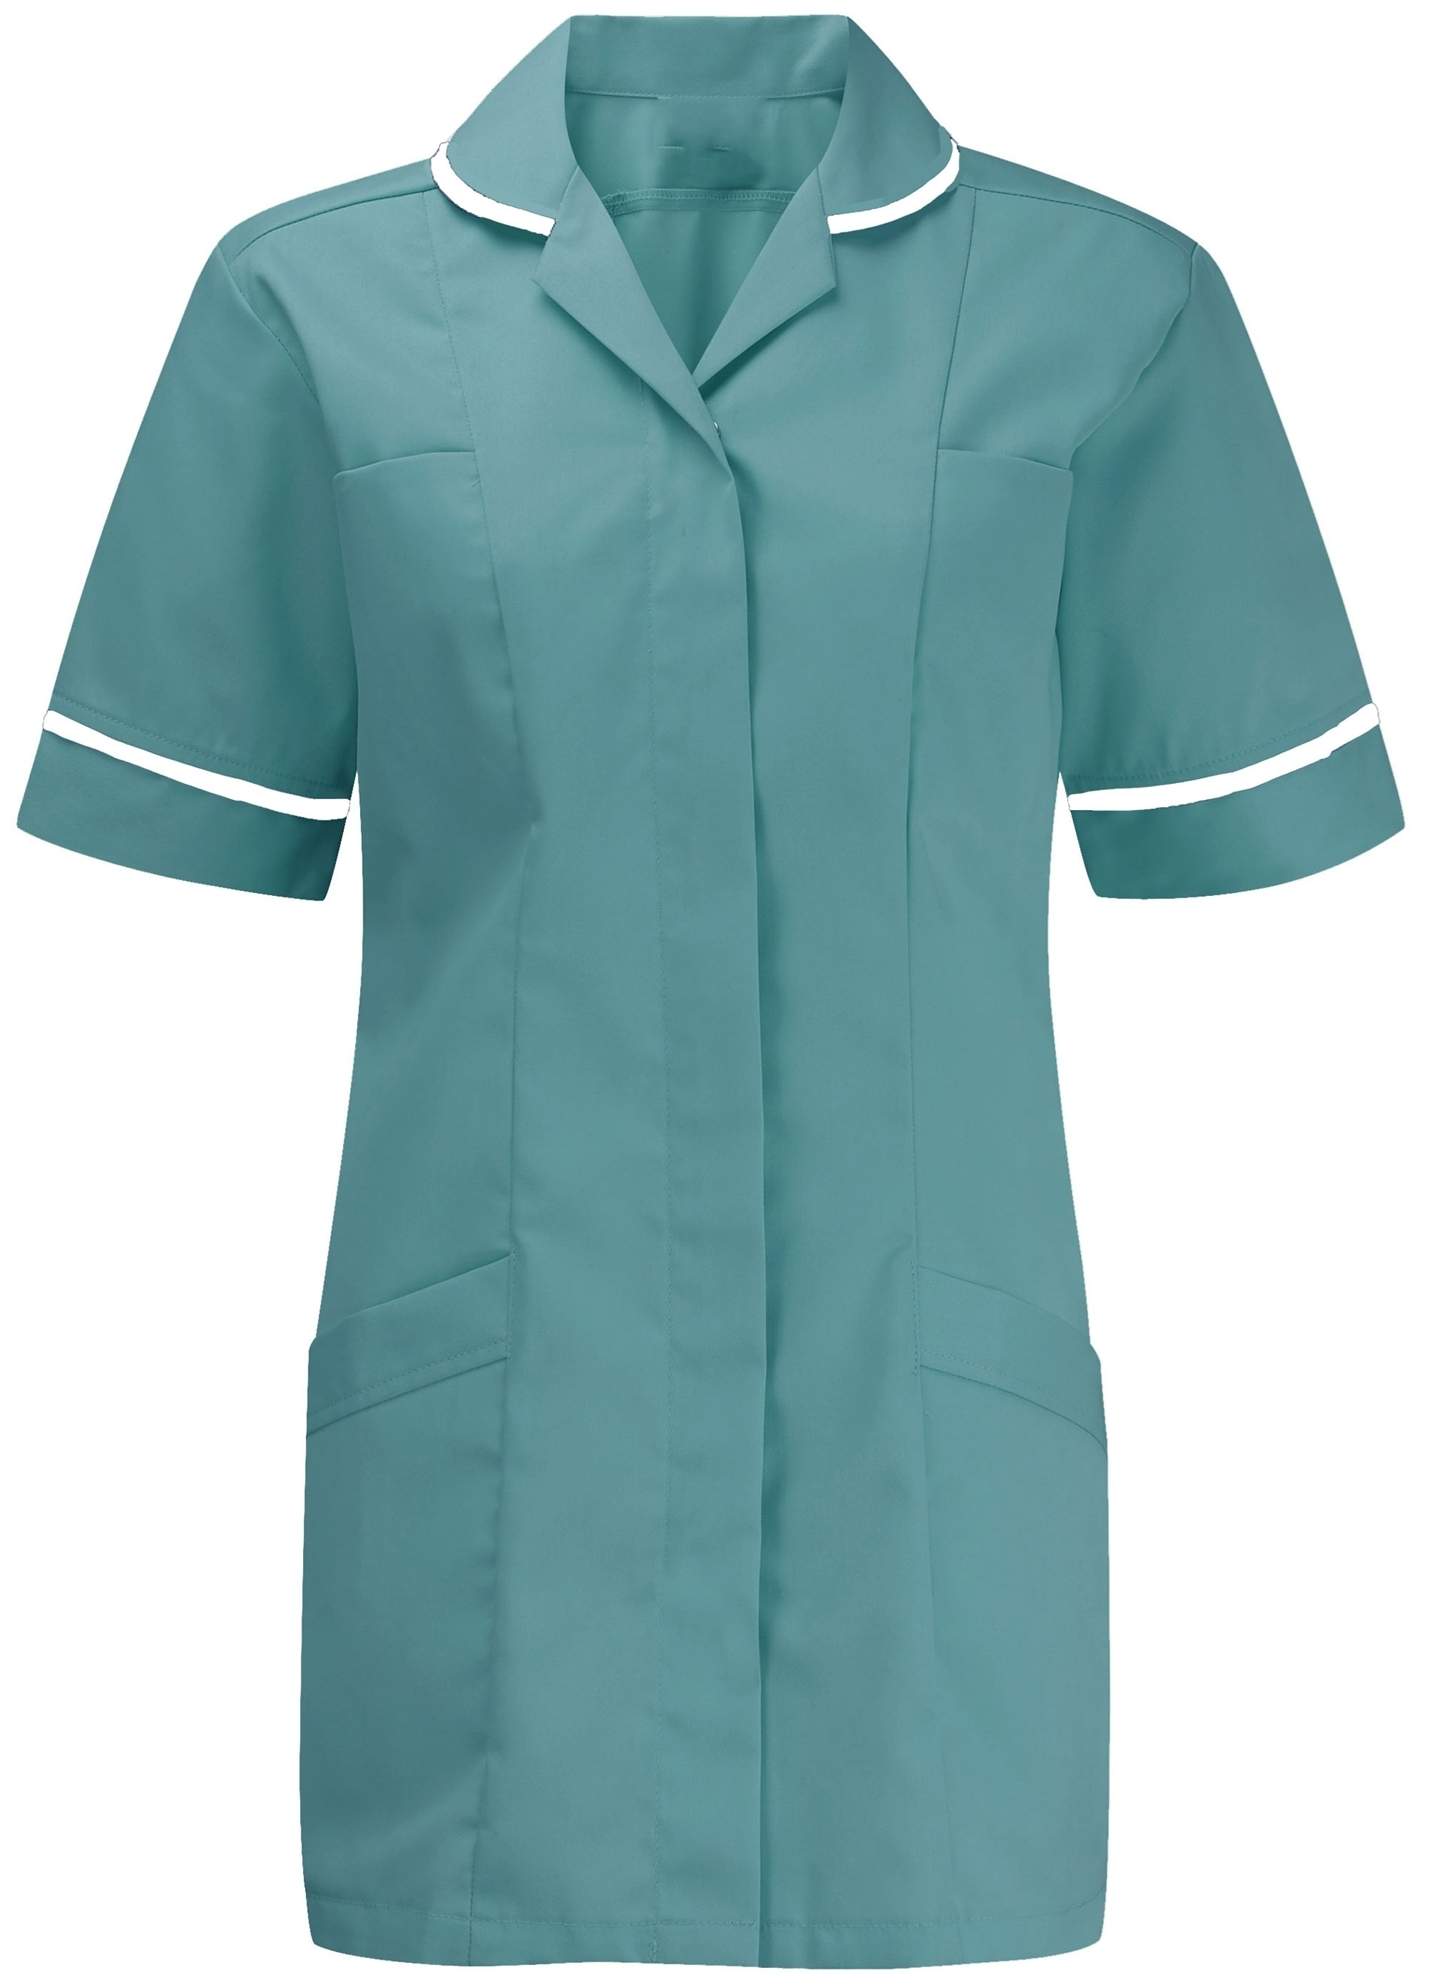 Picture of Advantage Tunic - Turquoise/White